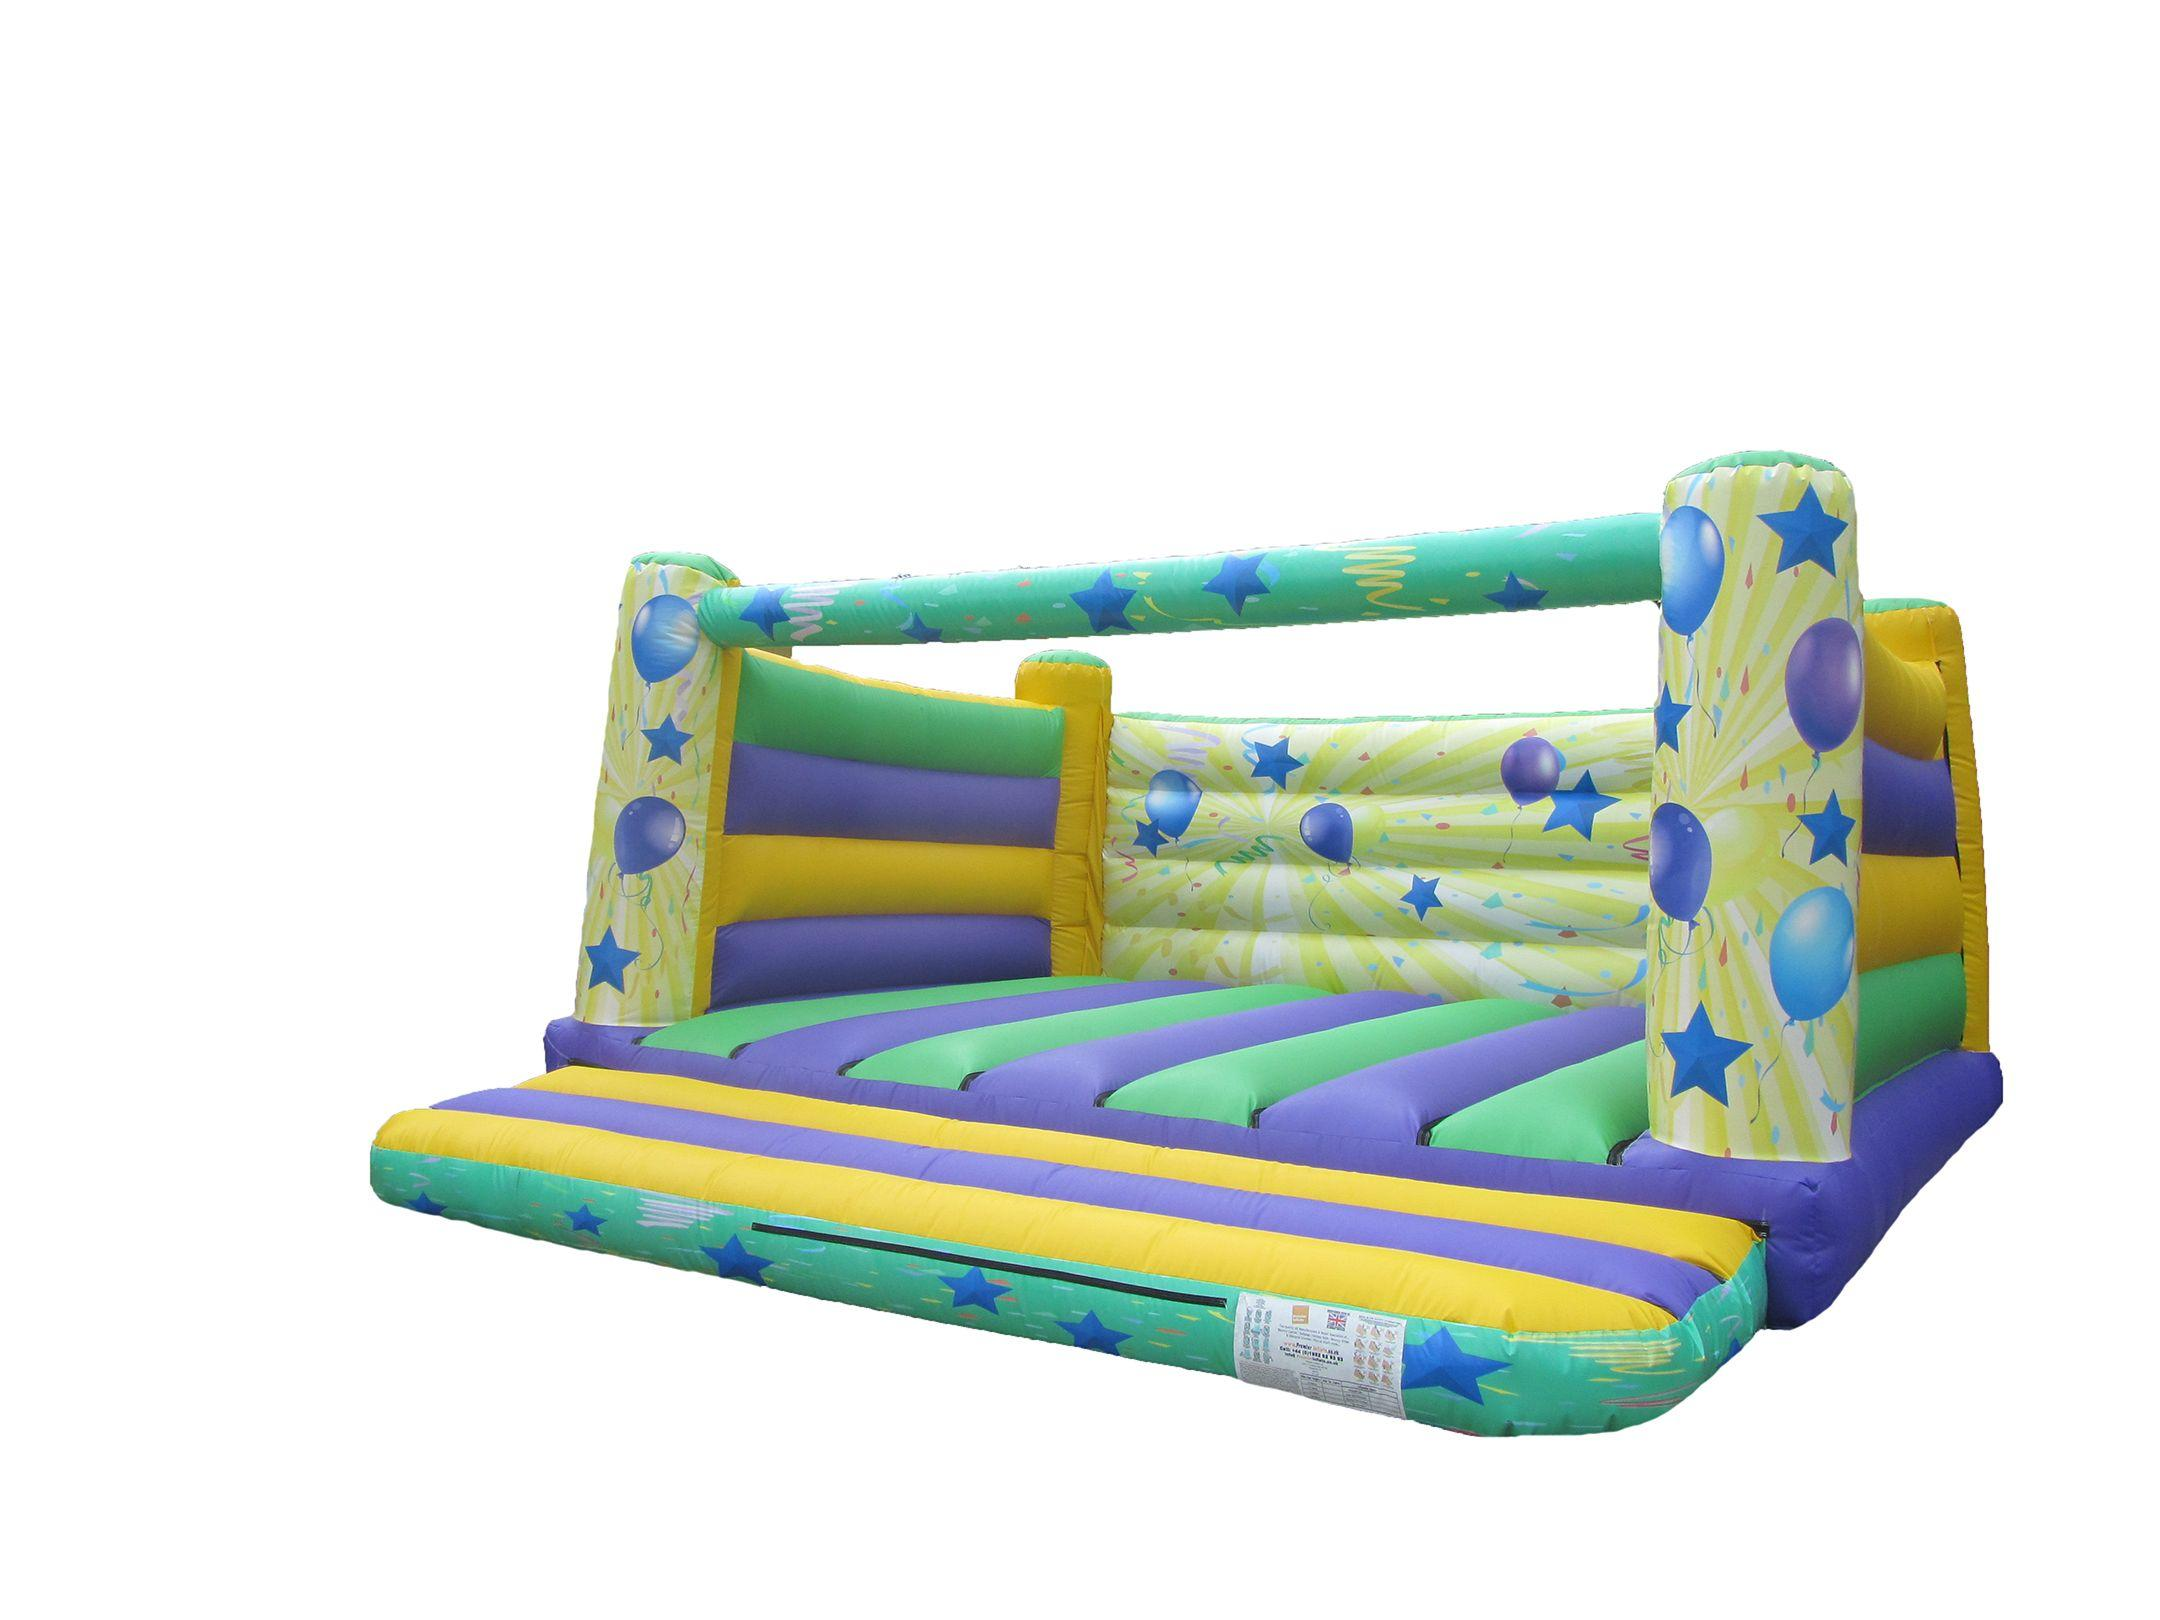 18x18 4 post printed party adults bouncy castle compressor